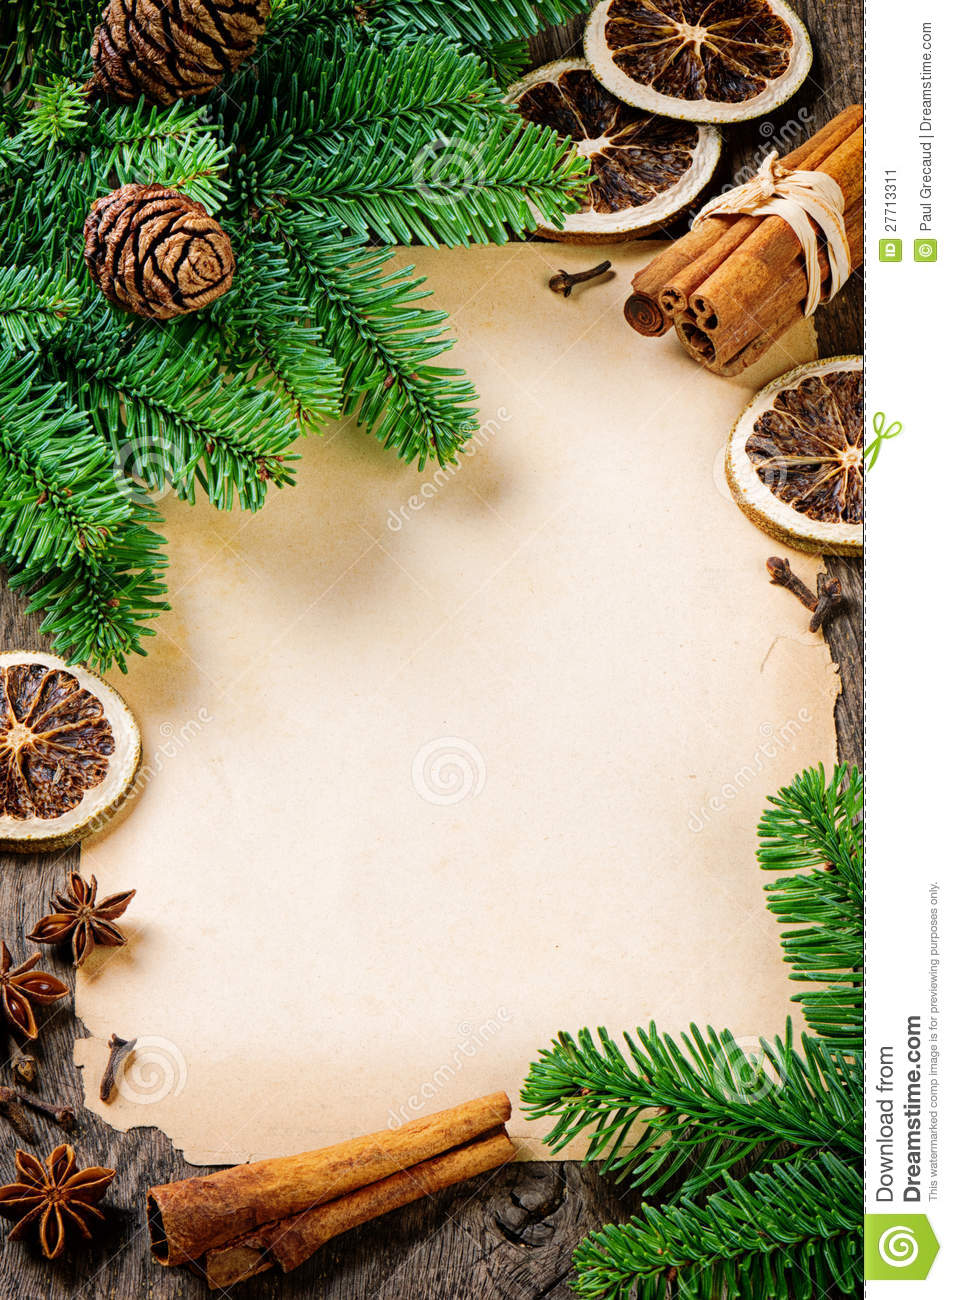 Frame With Vintage Paper And Christmas Tree Stock Image